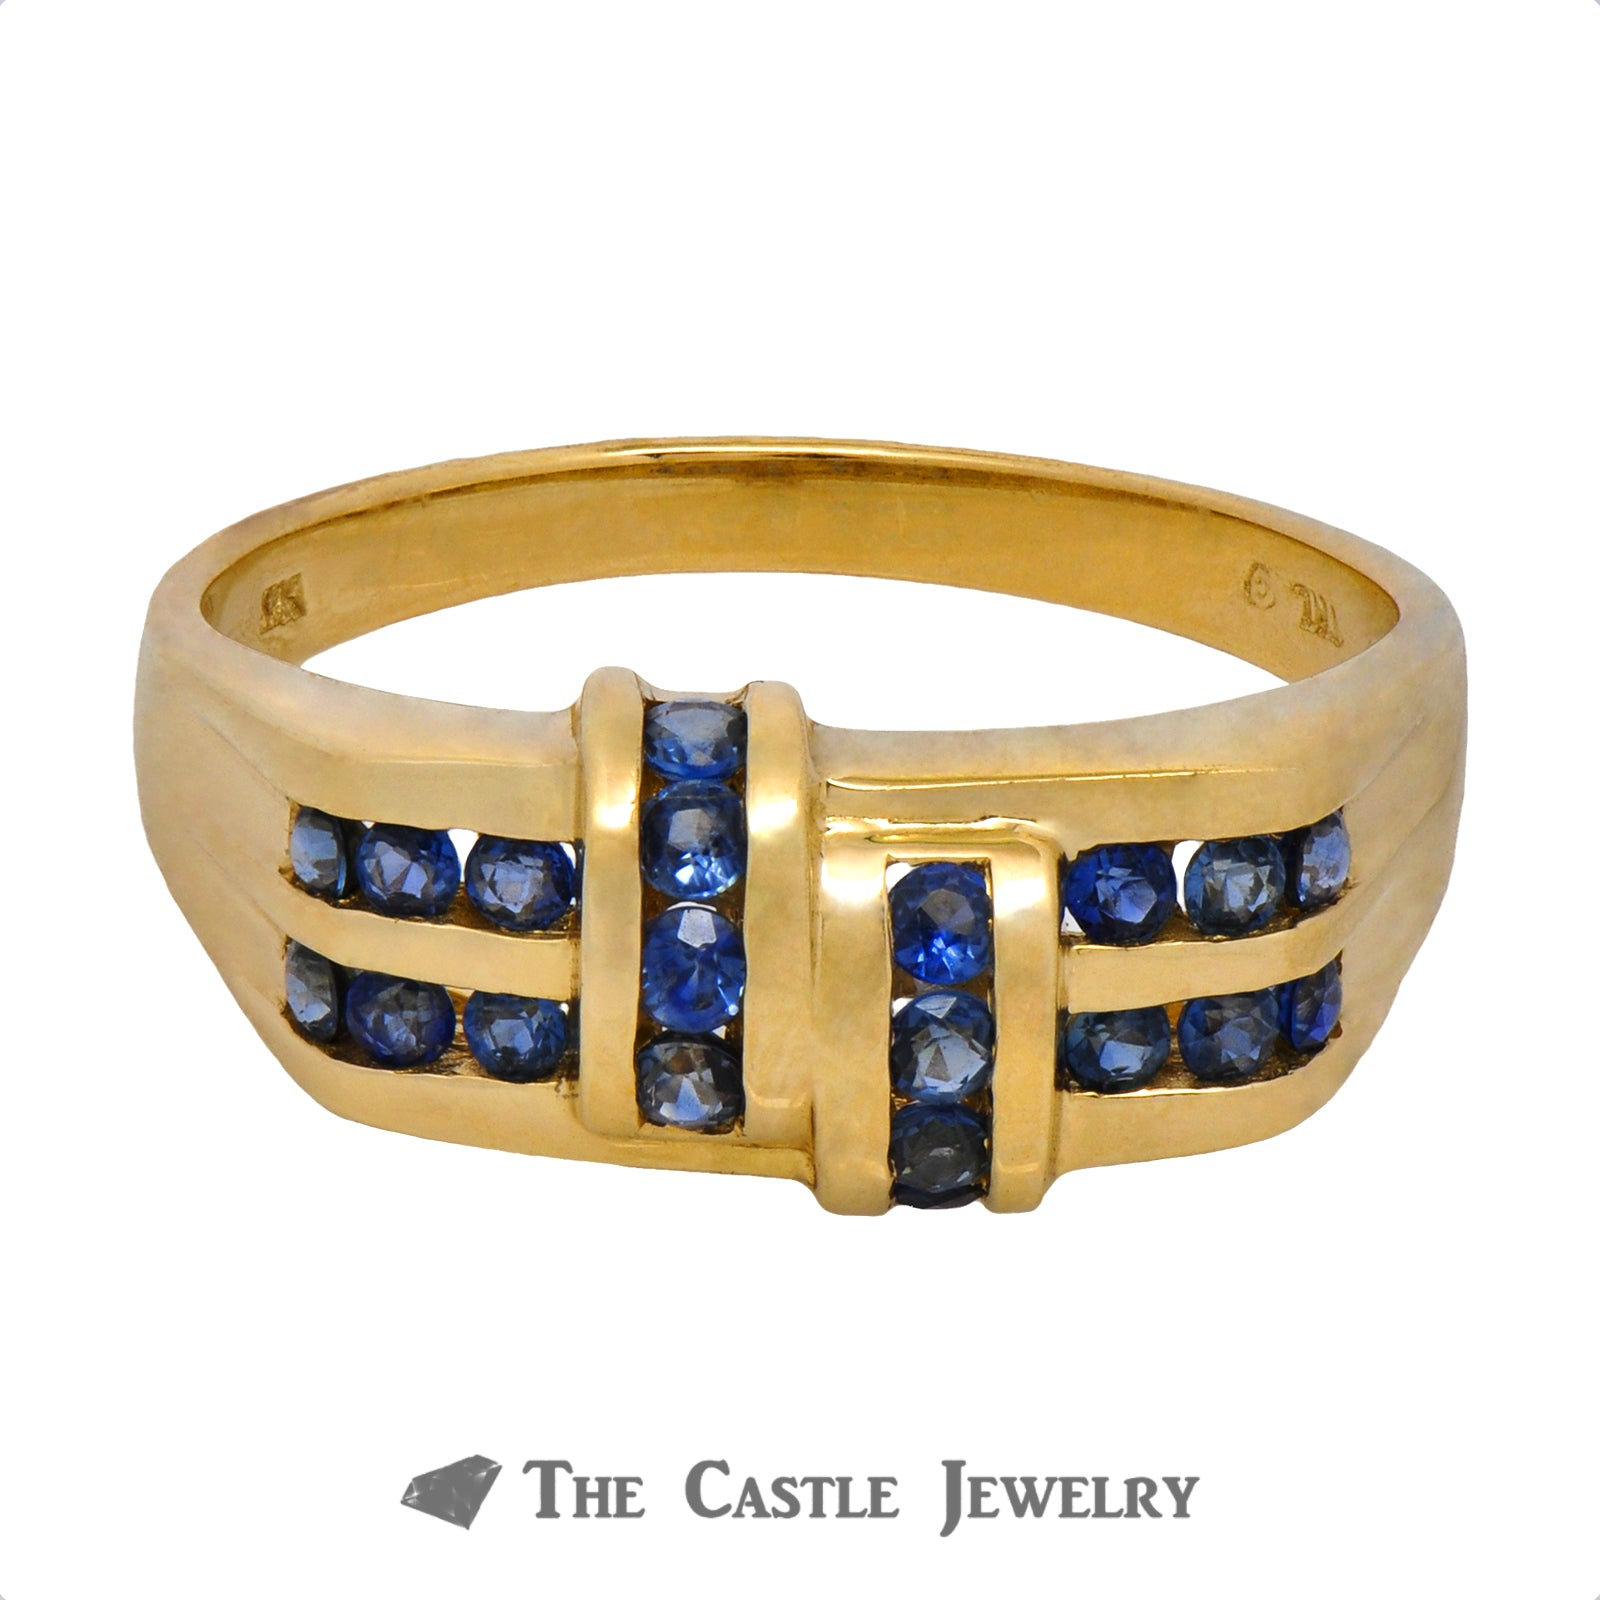 Unique Yellow Gold Ring with Rows of Sapphires